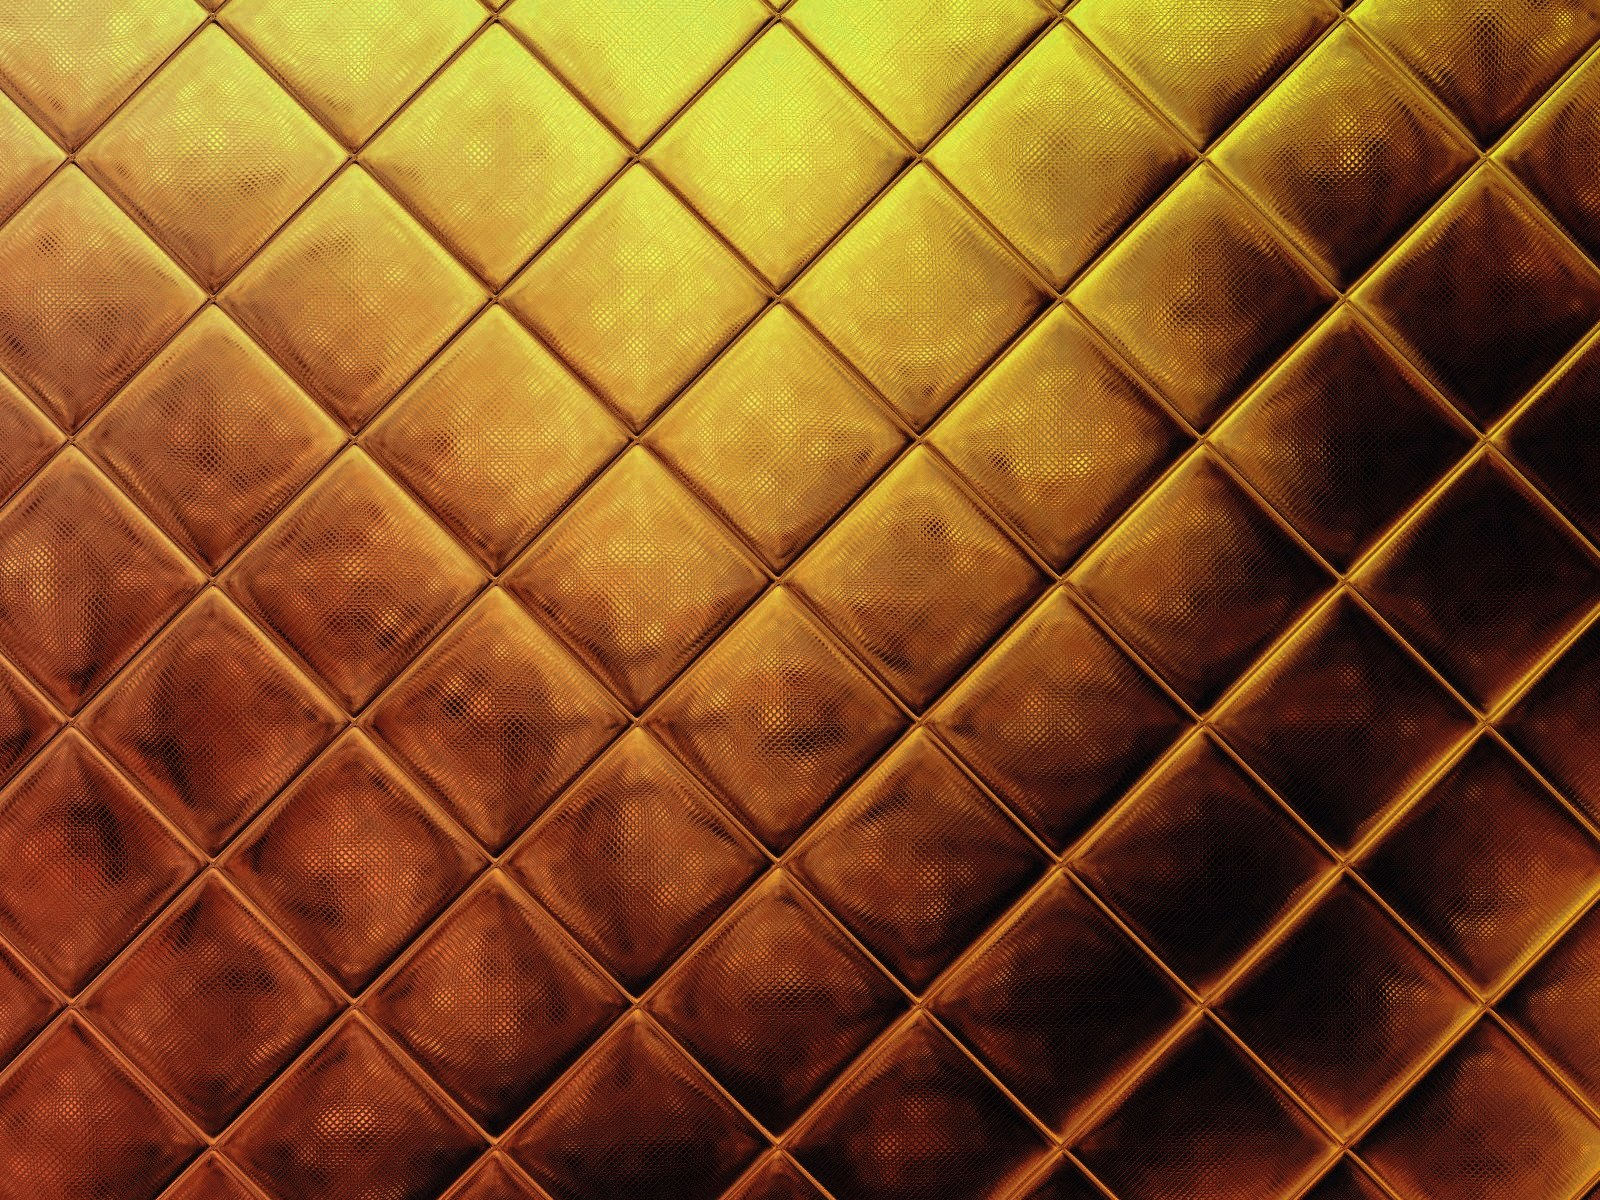 gold texture, texture gold, gold, golden background, background